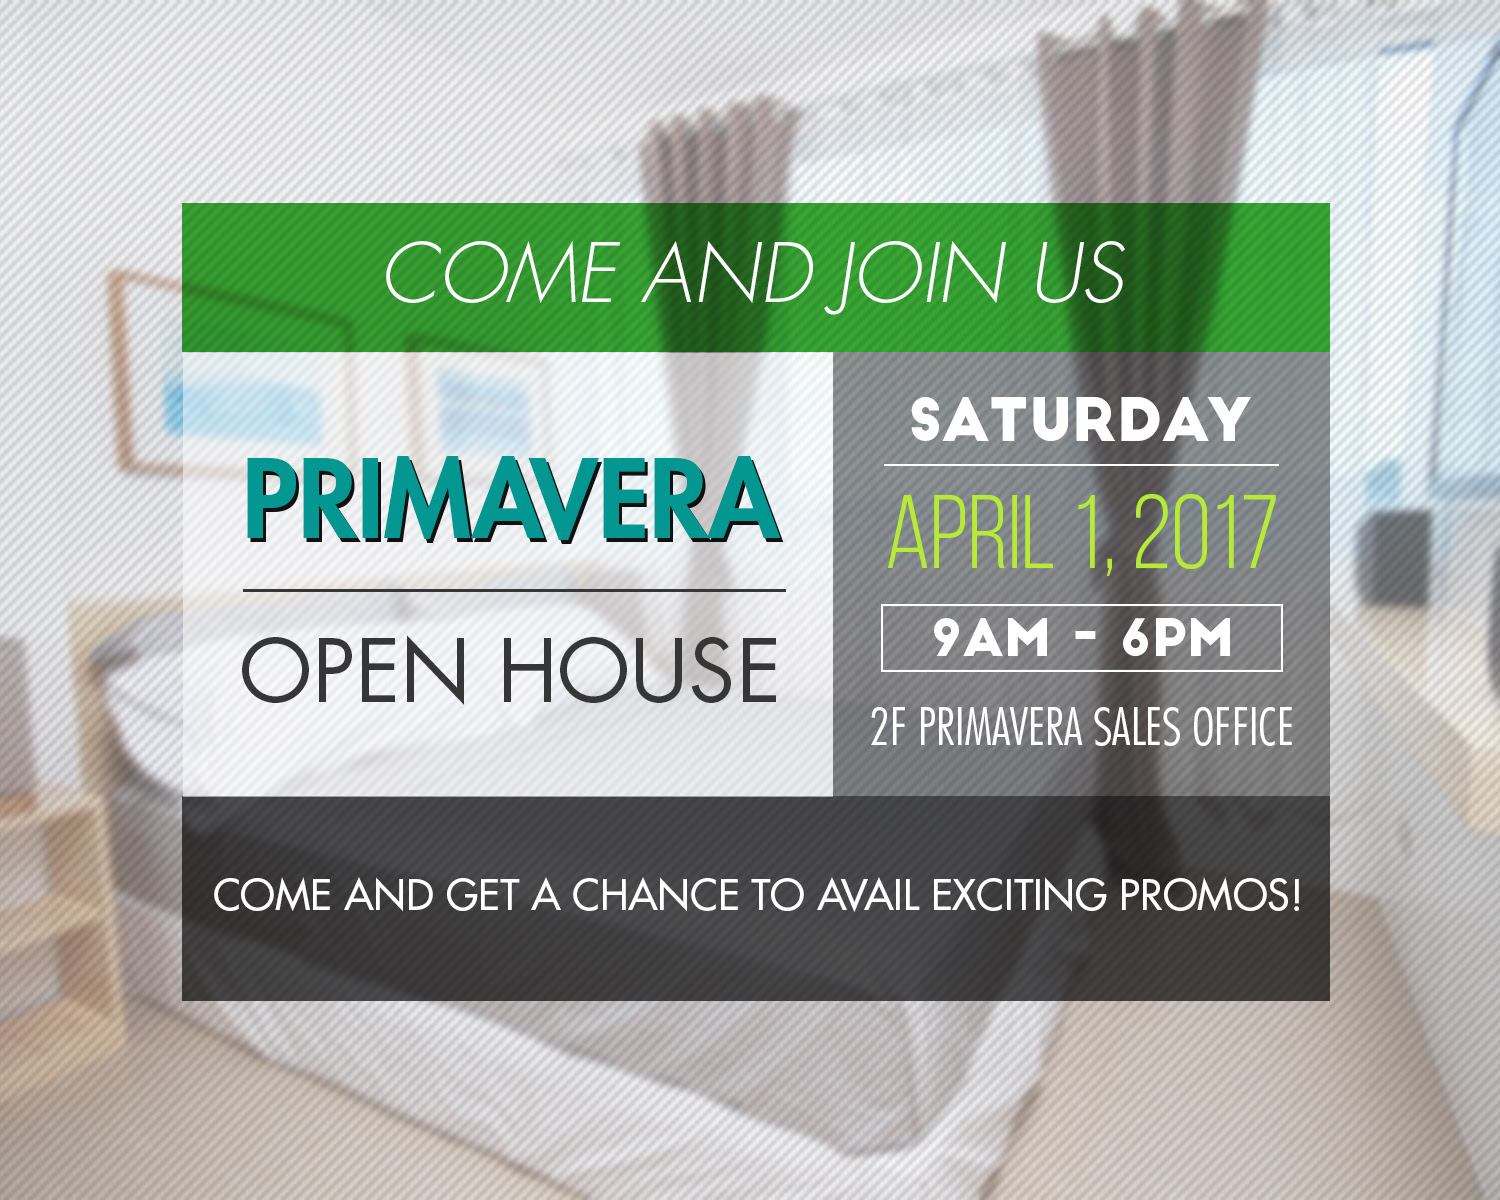 Primavera Open House on April 1, 2017!!!